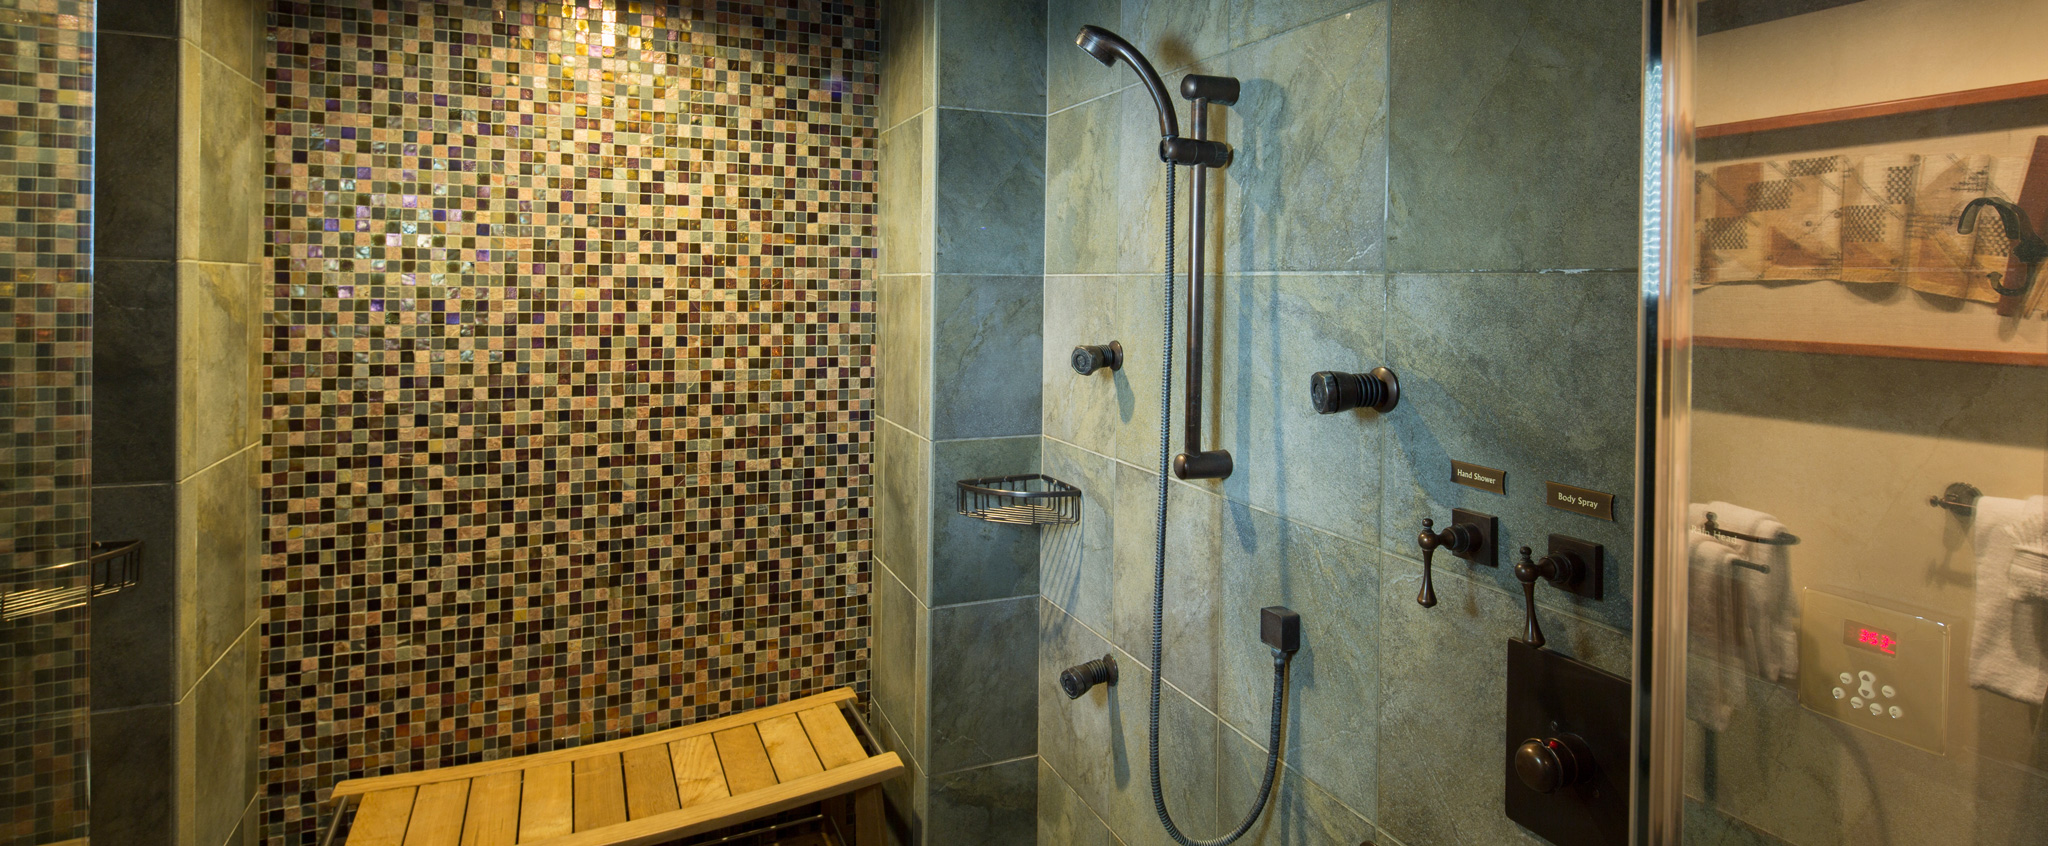 A large walk-in tiled shower has dark bronze fixtures and a wooden shower bench